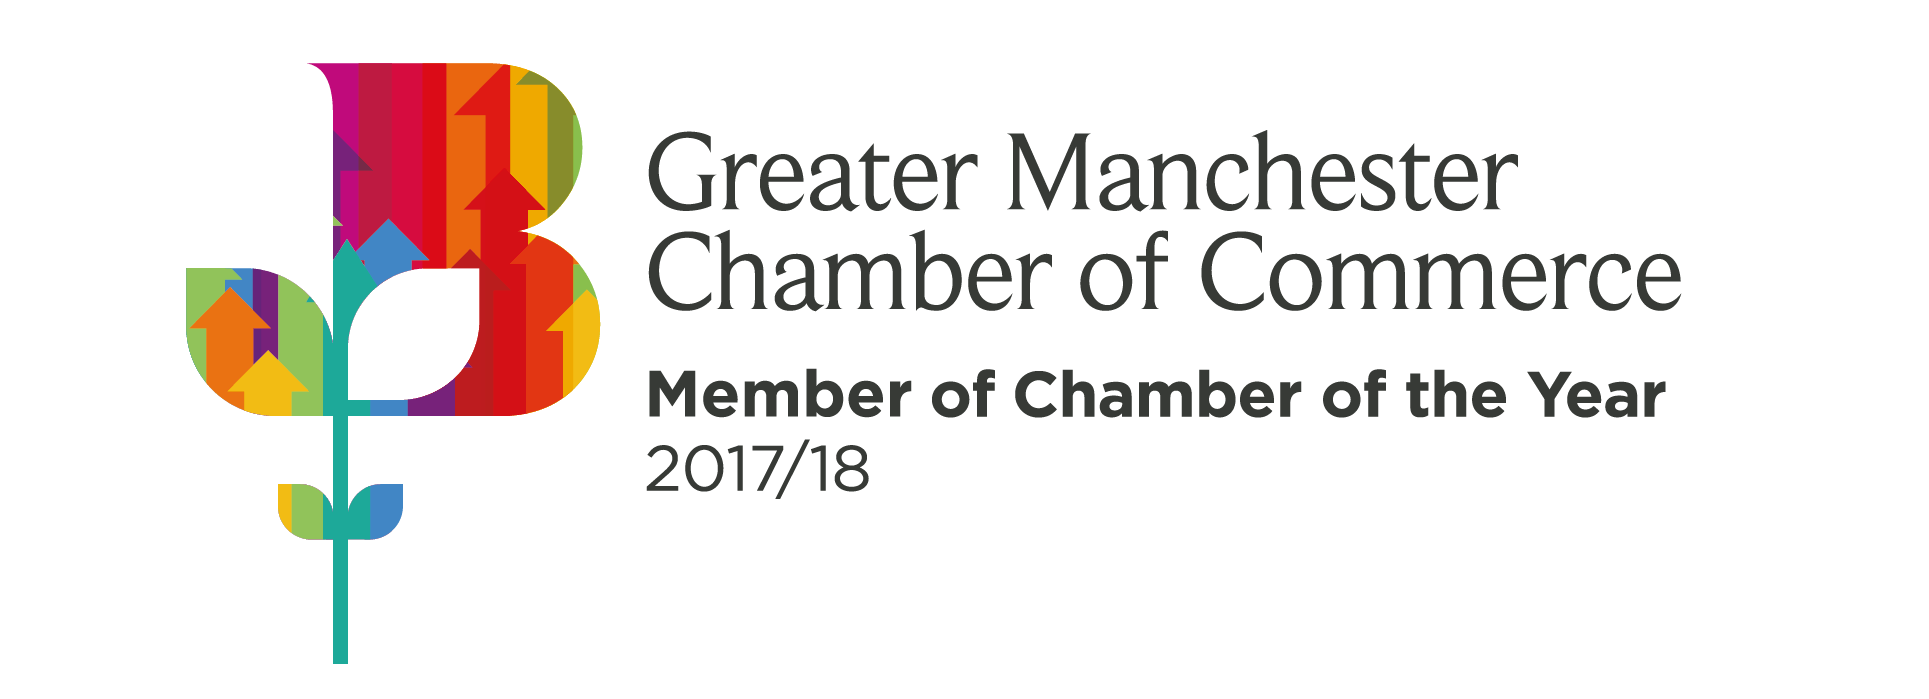 Masterflex - Greater Manchester Chamber of Commerce Member